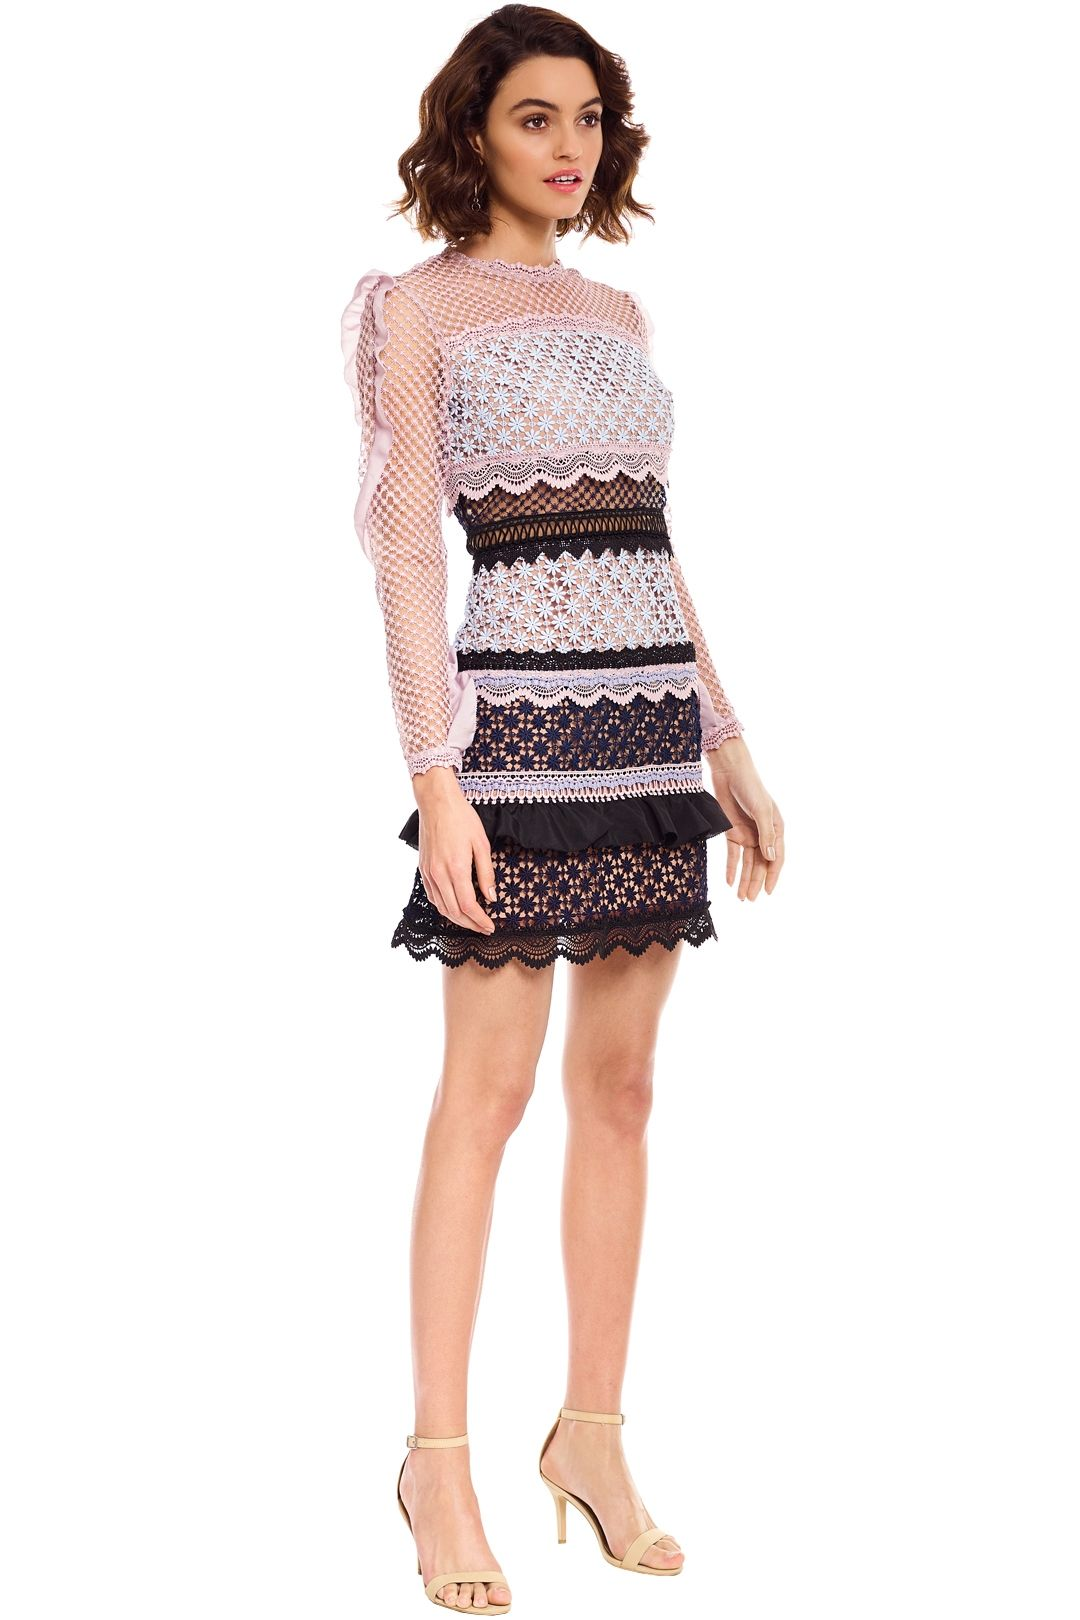 Self Portrait - Bellis Lace Trim Dress with Frilled Sleeves - Pink - Side